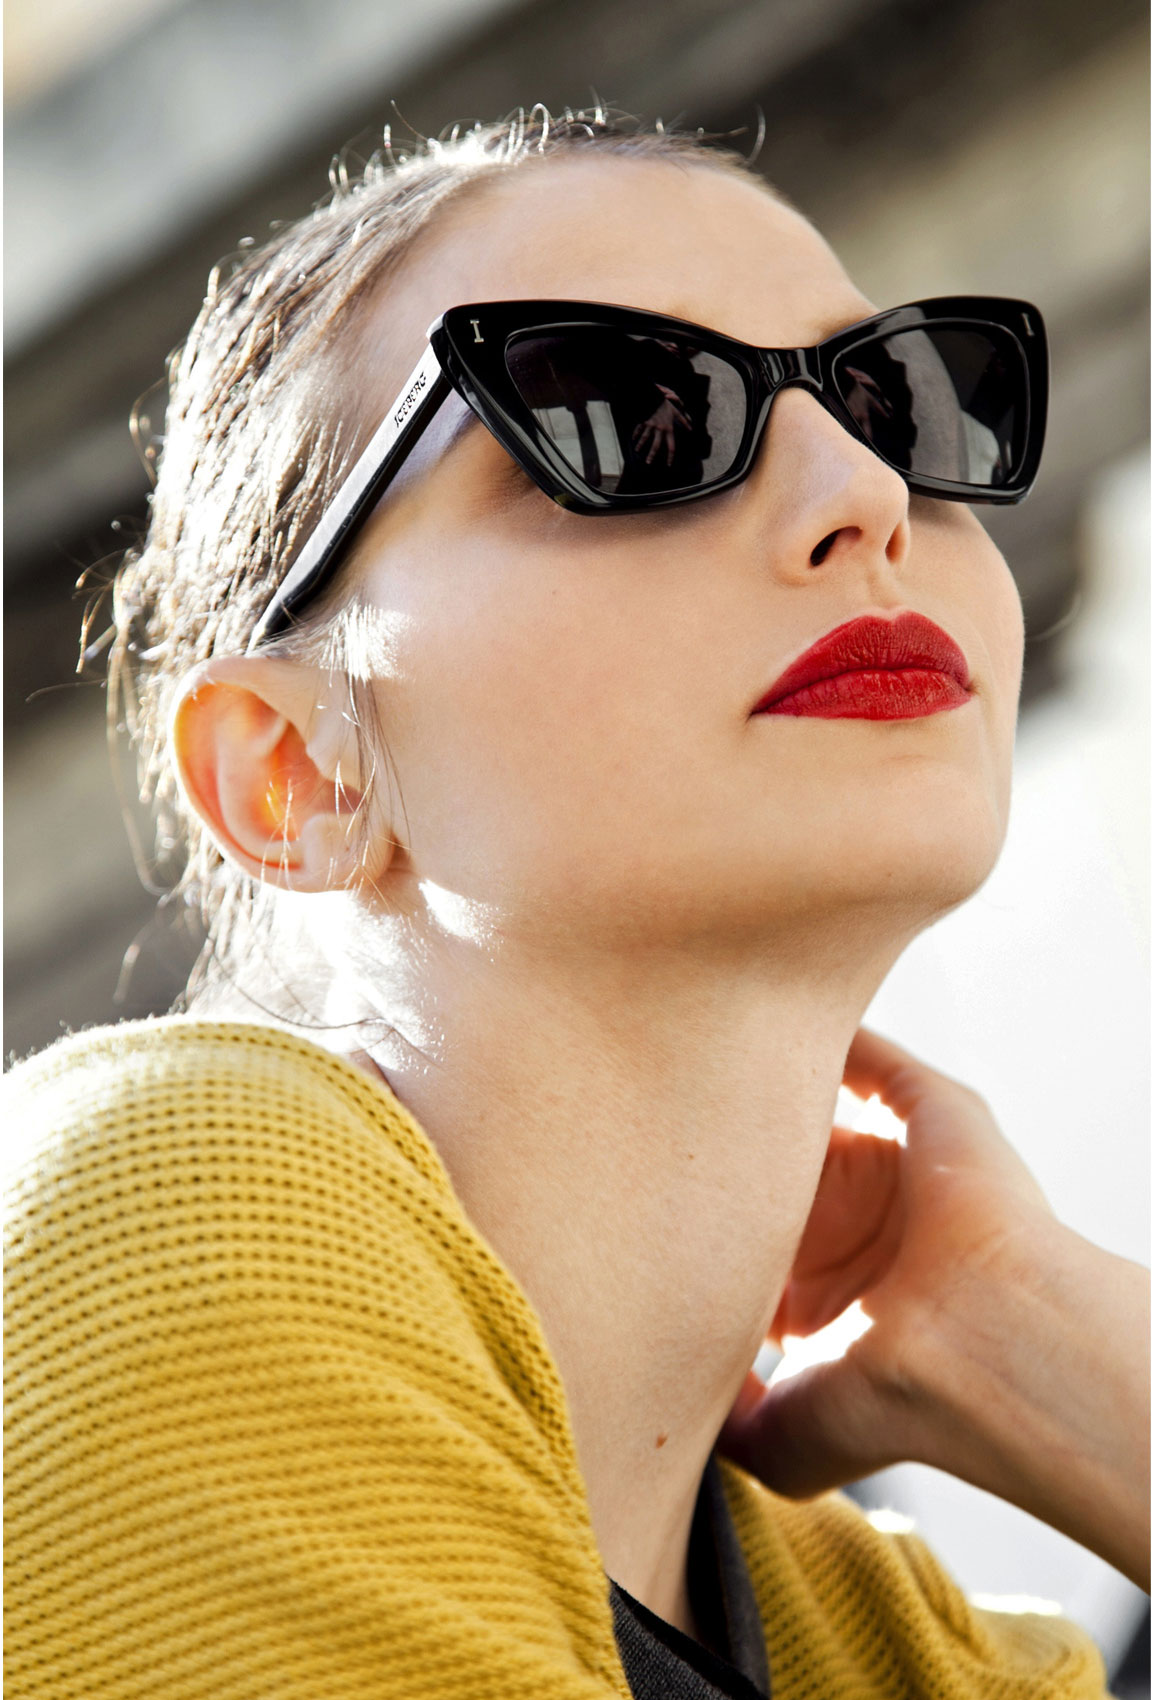 These 5 Foolproof Tricks Will Make Your Red Lipstick Last All Day